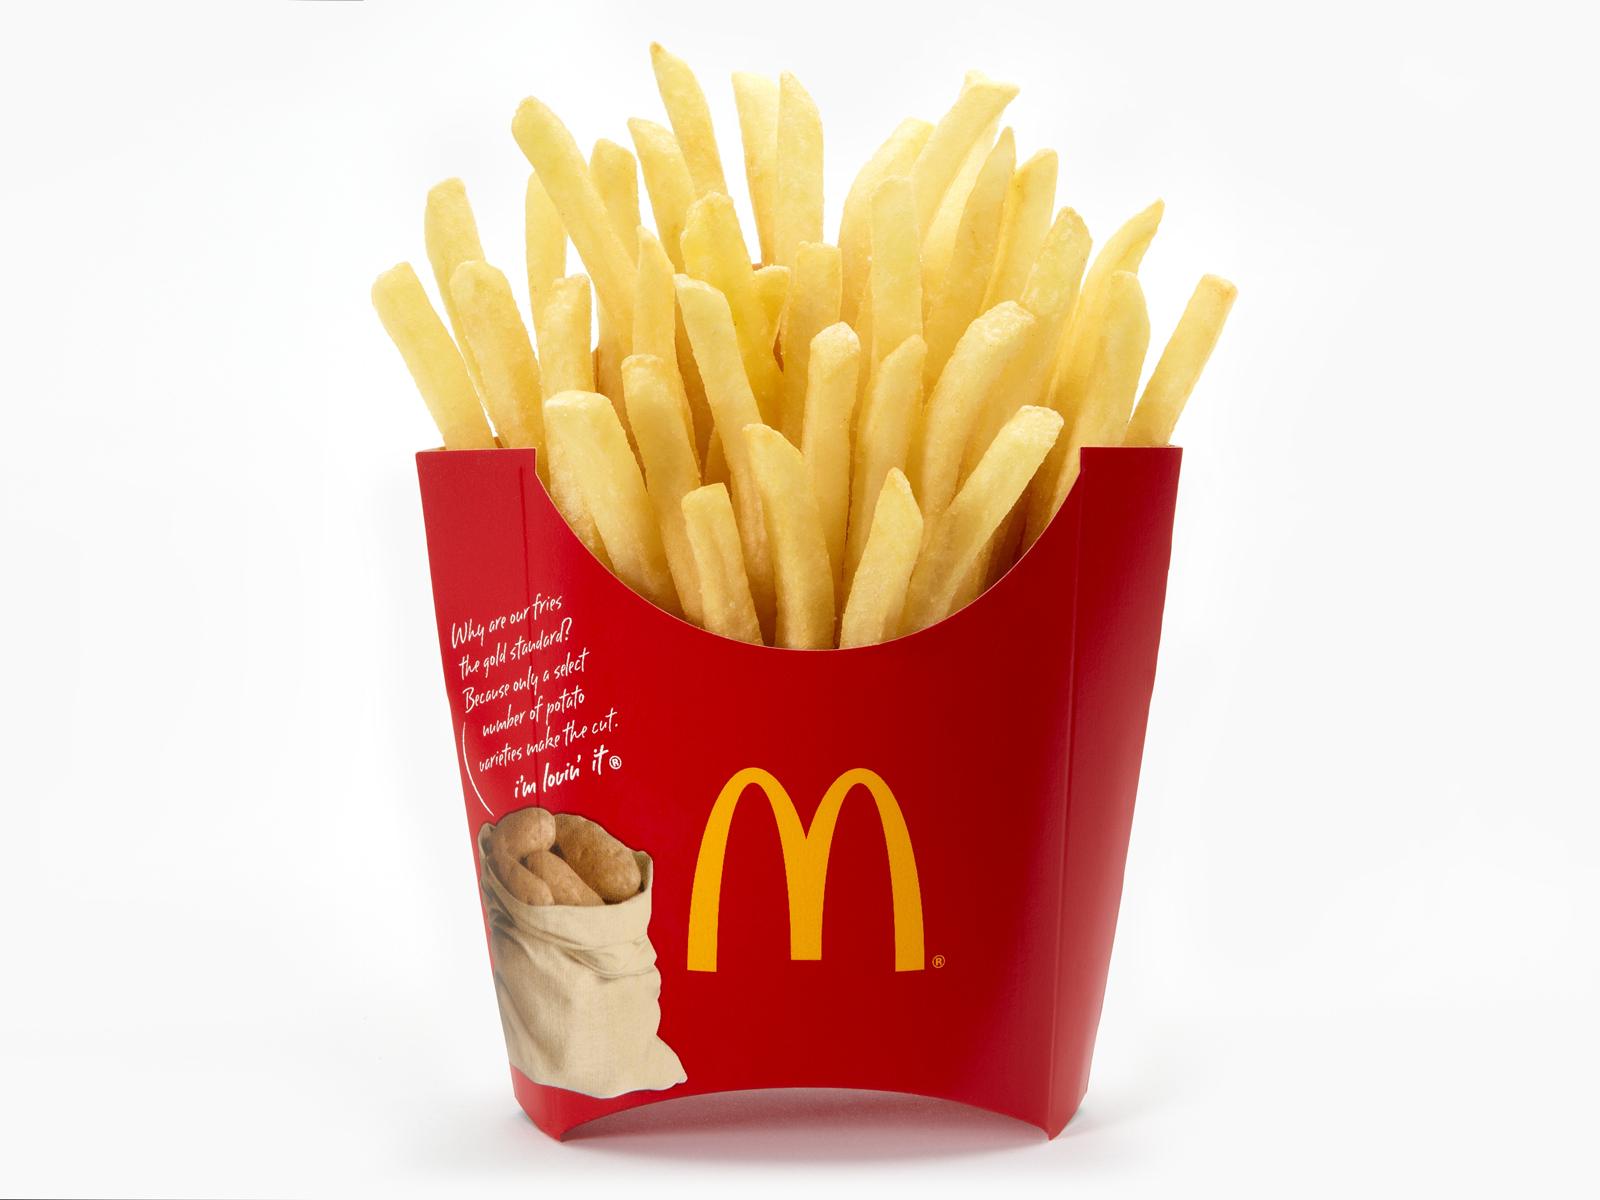 How to Get Free McDonald's French Fries All Month